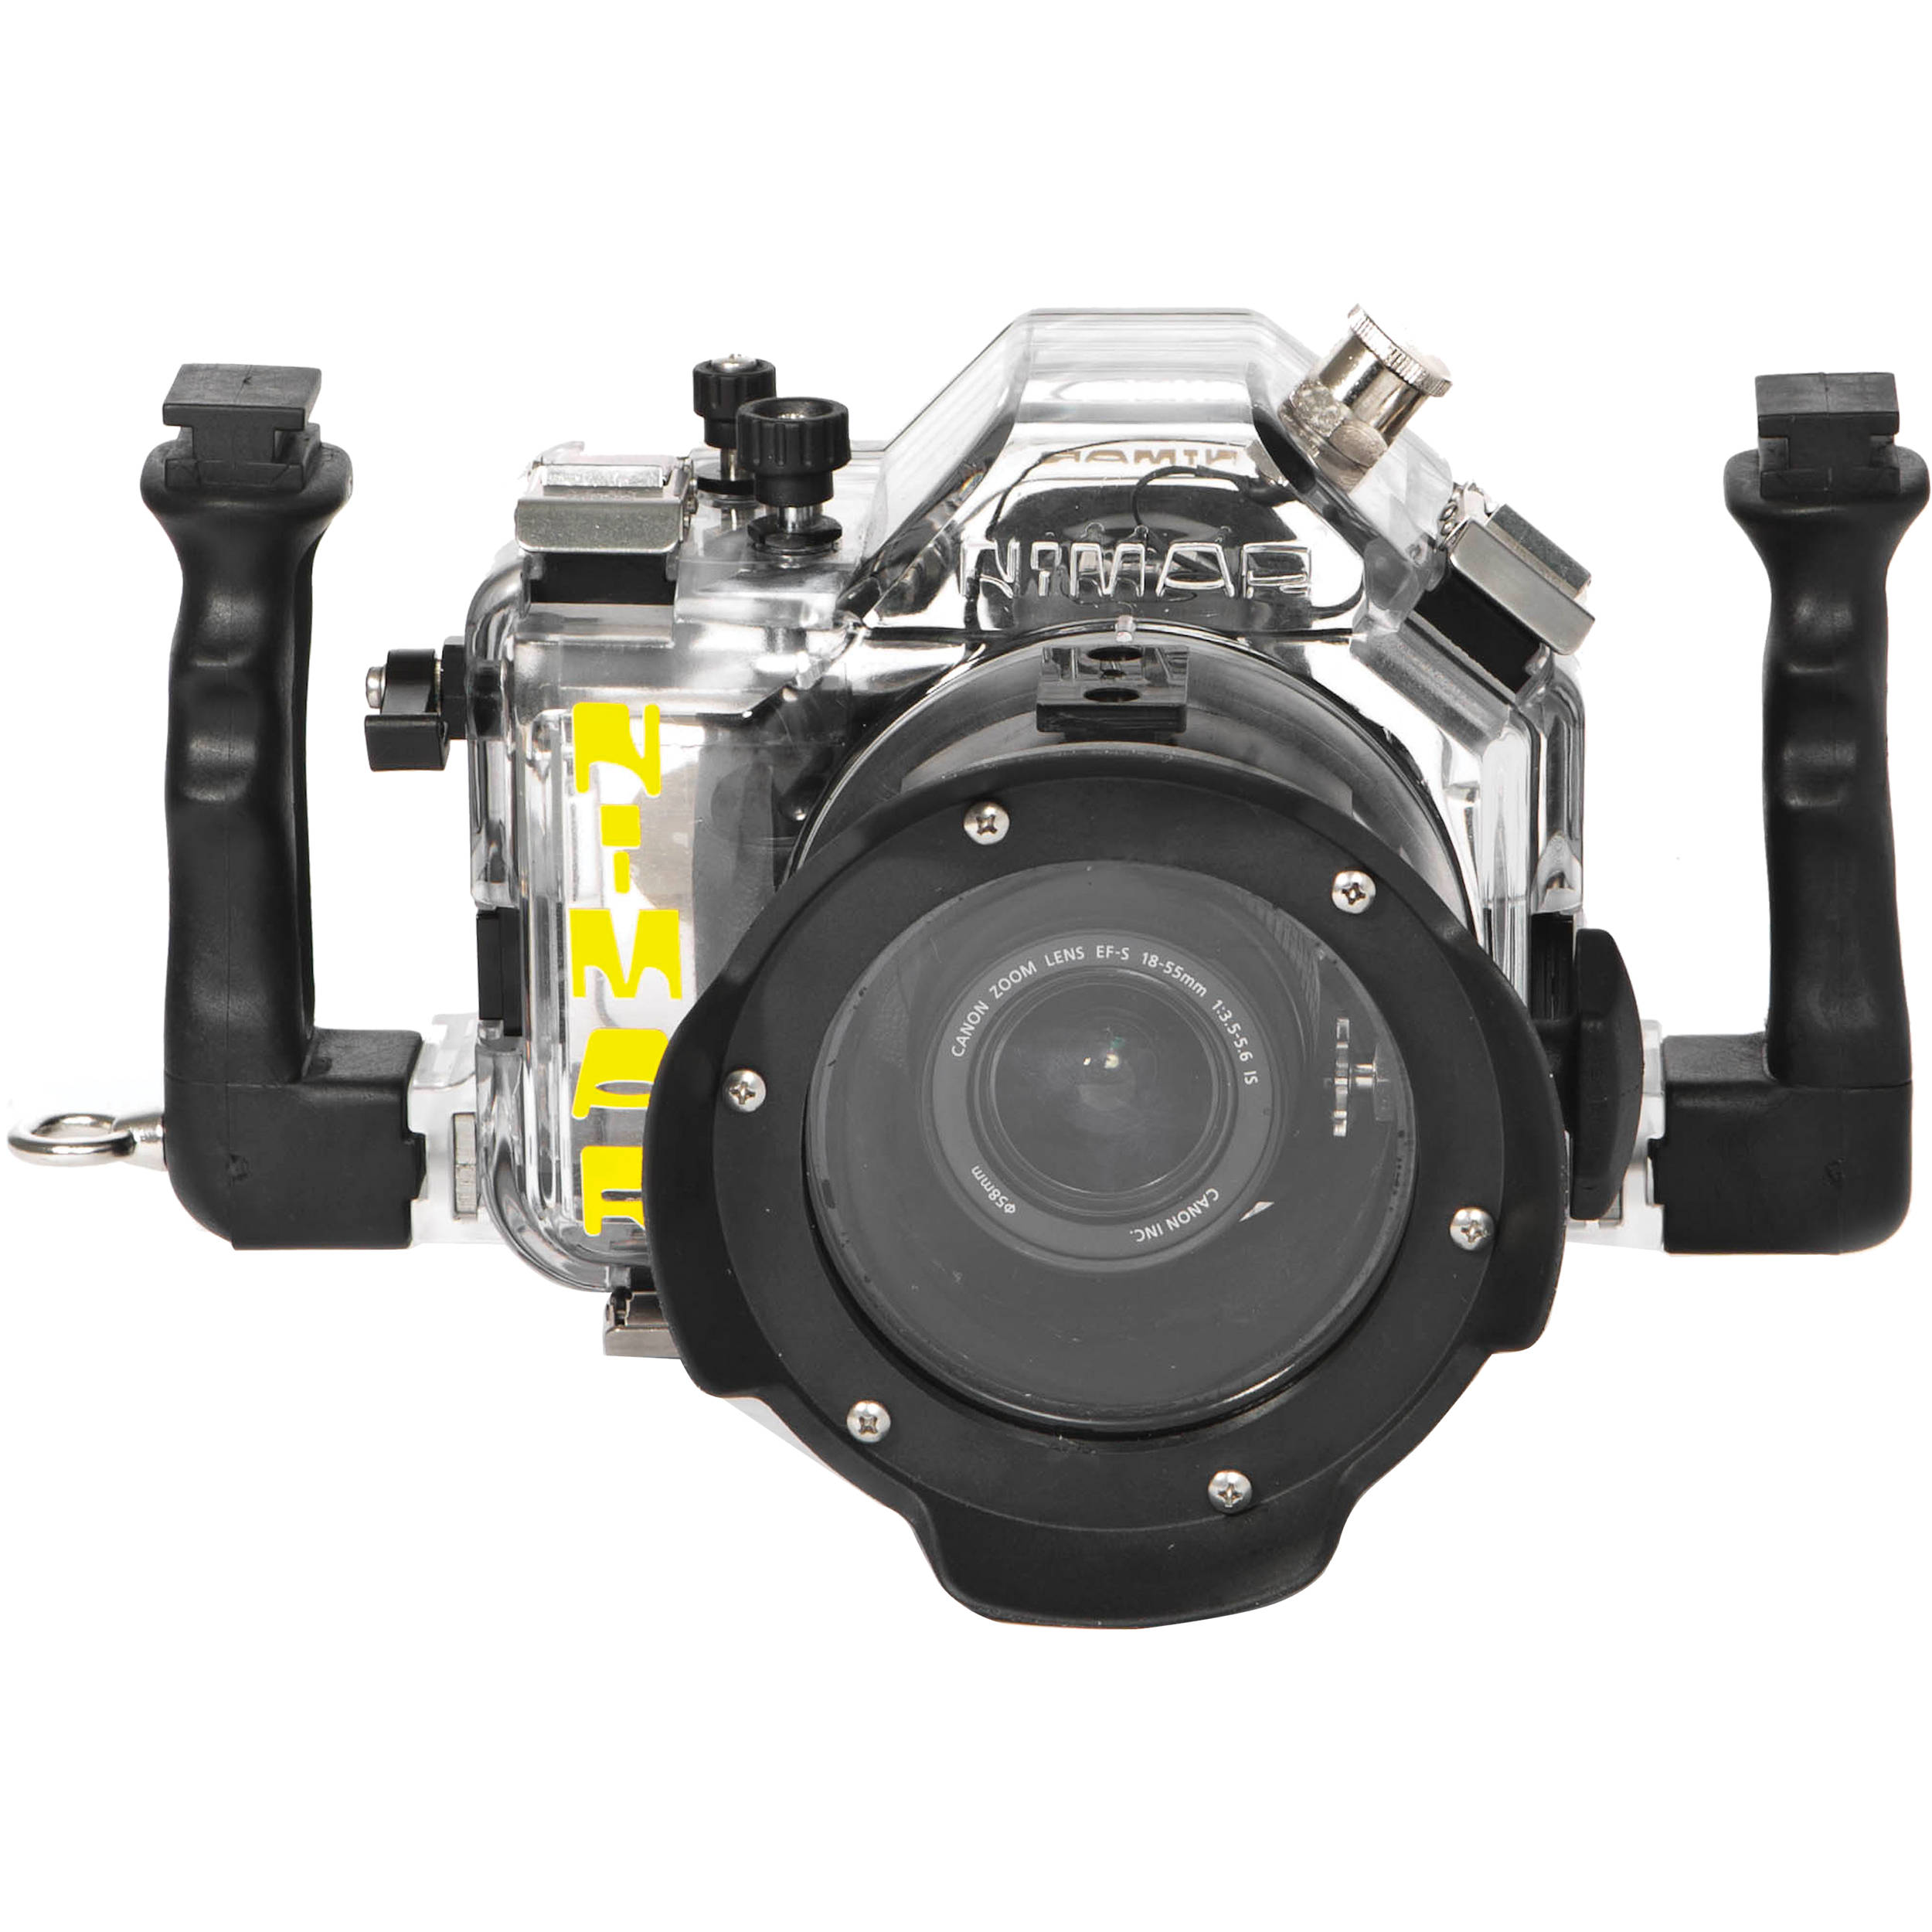 Nimar Underwater Housing for Canon EOS 600D/Rebel T3i with Lens Port for  EF-S 18-55mm f/3 5-5 6 IS